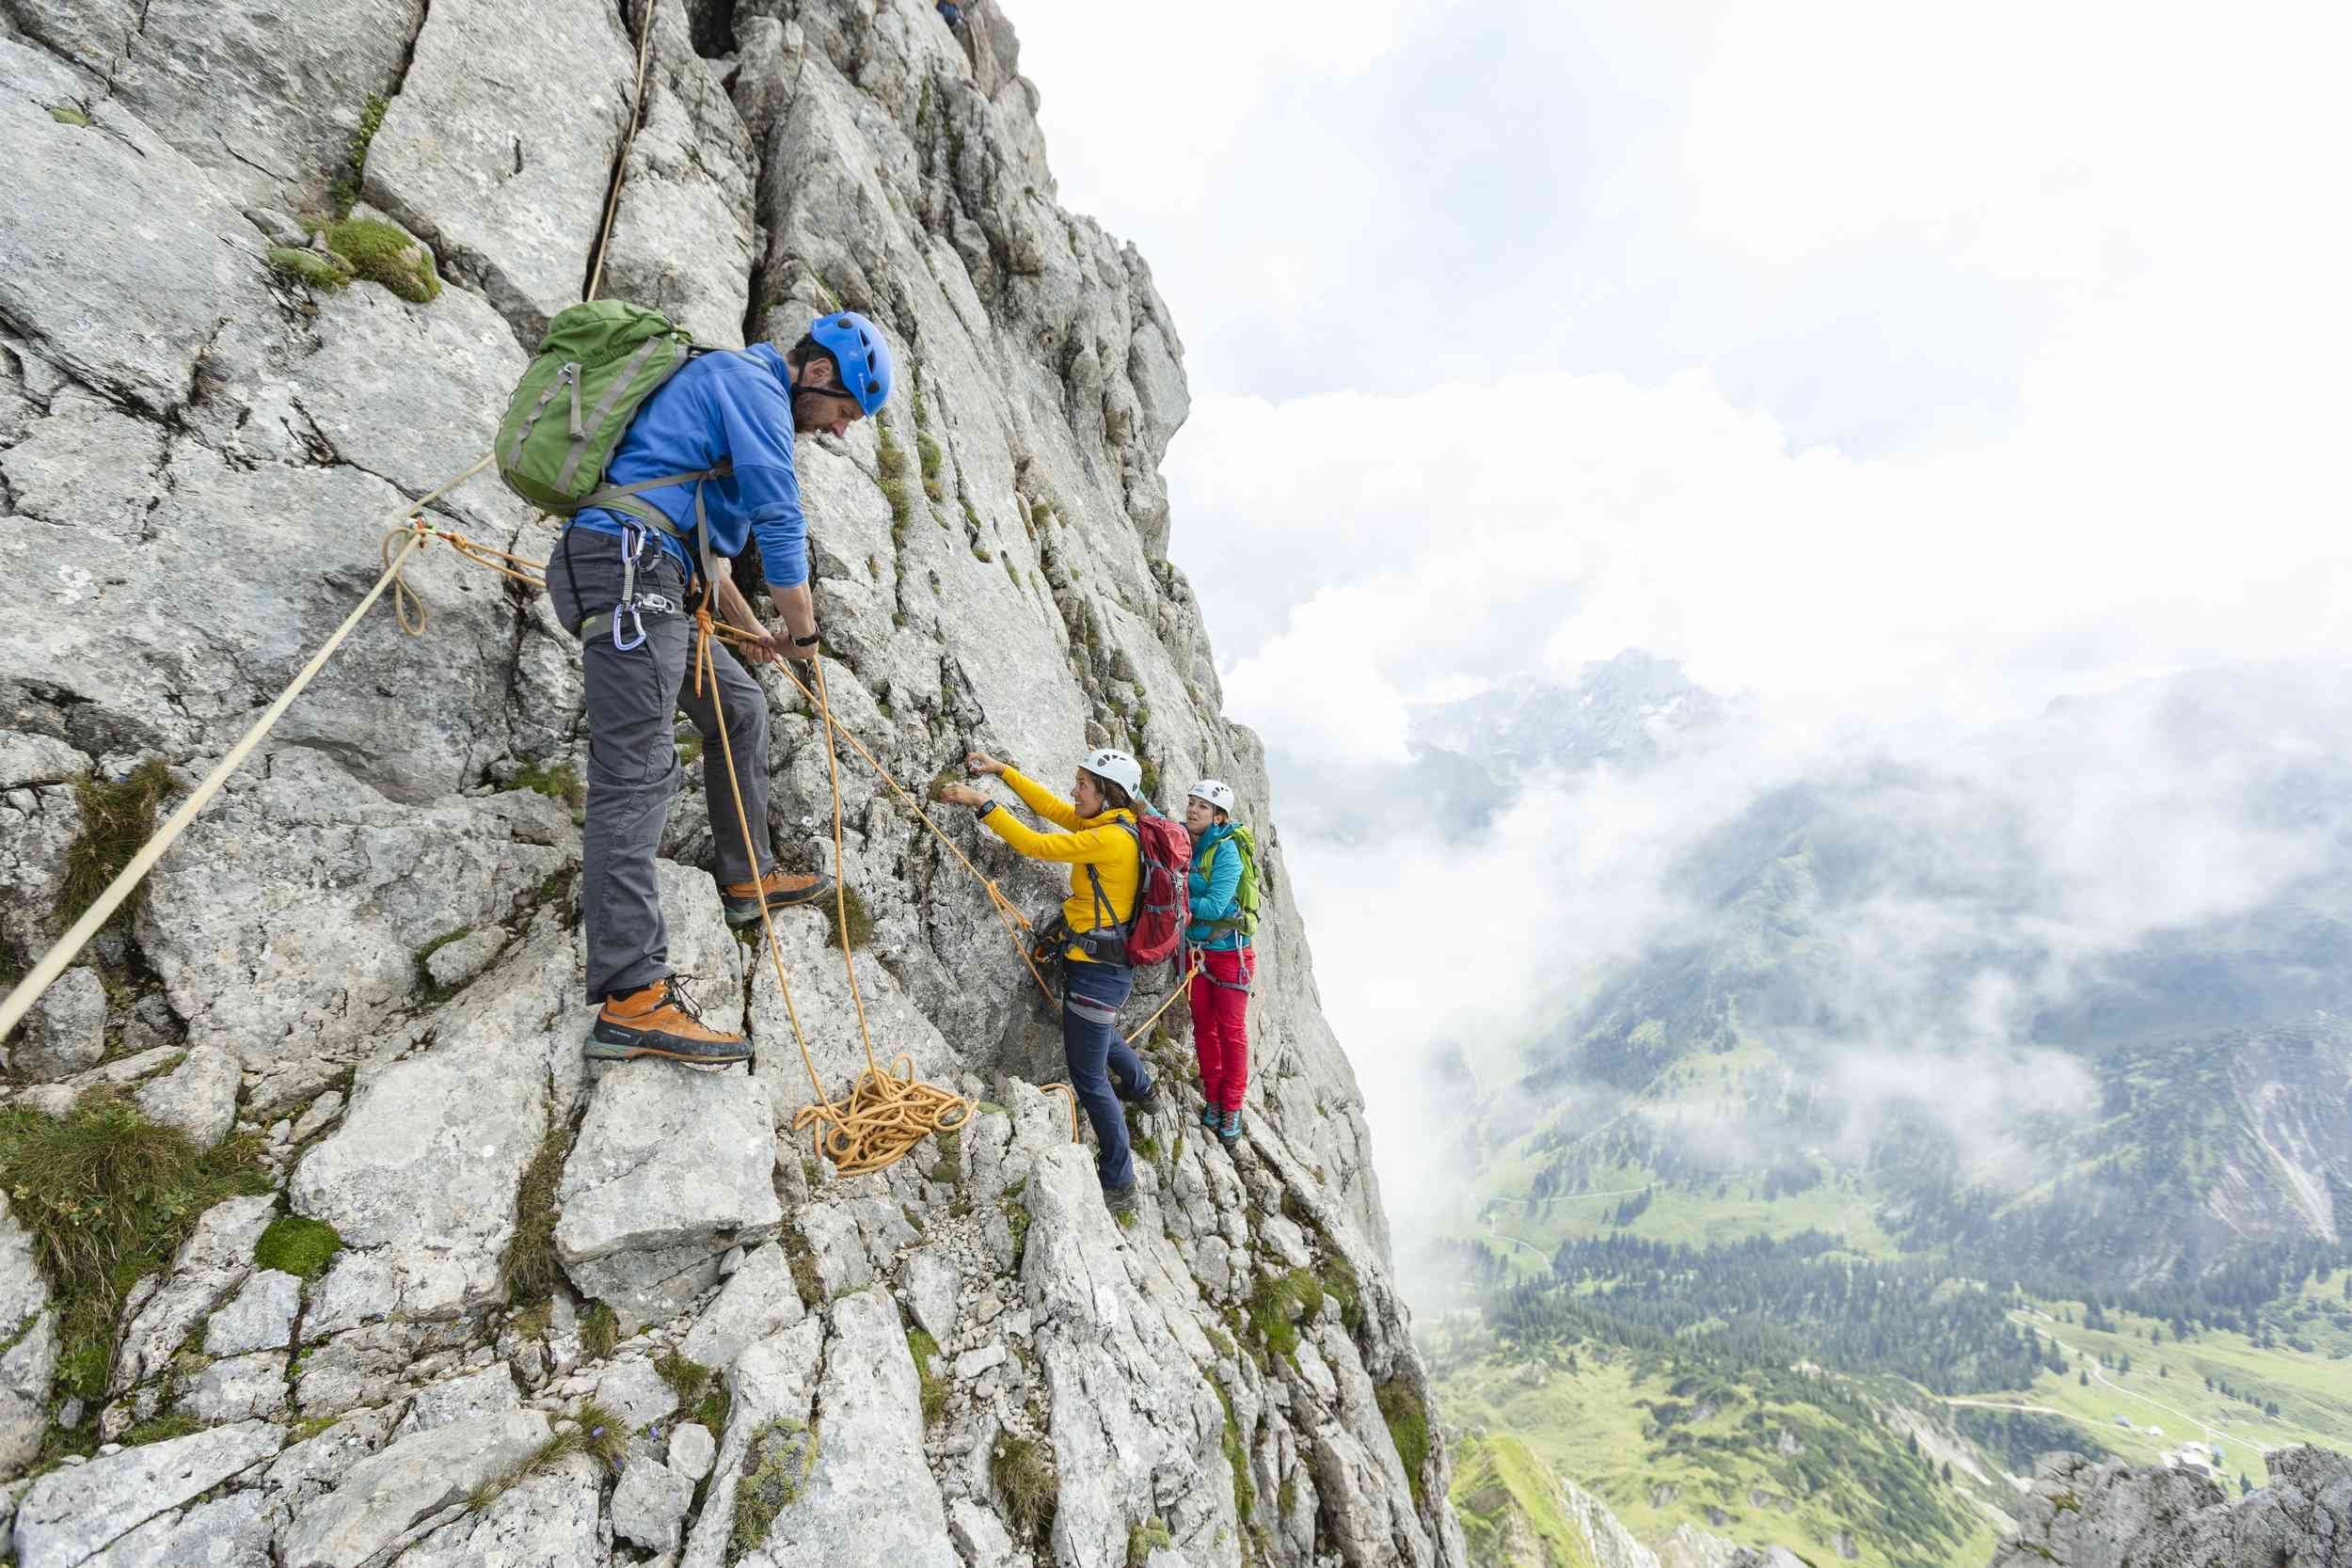 Group of rock climbers in Voralberg, Austria